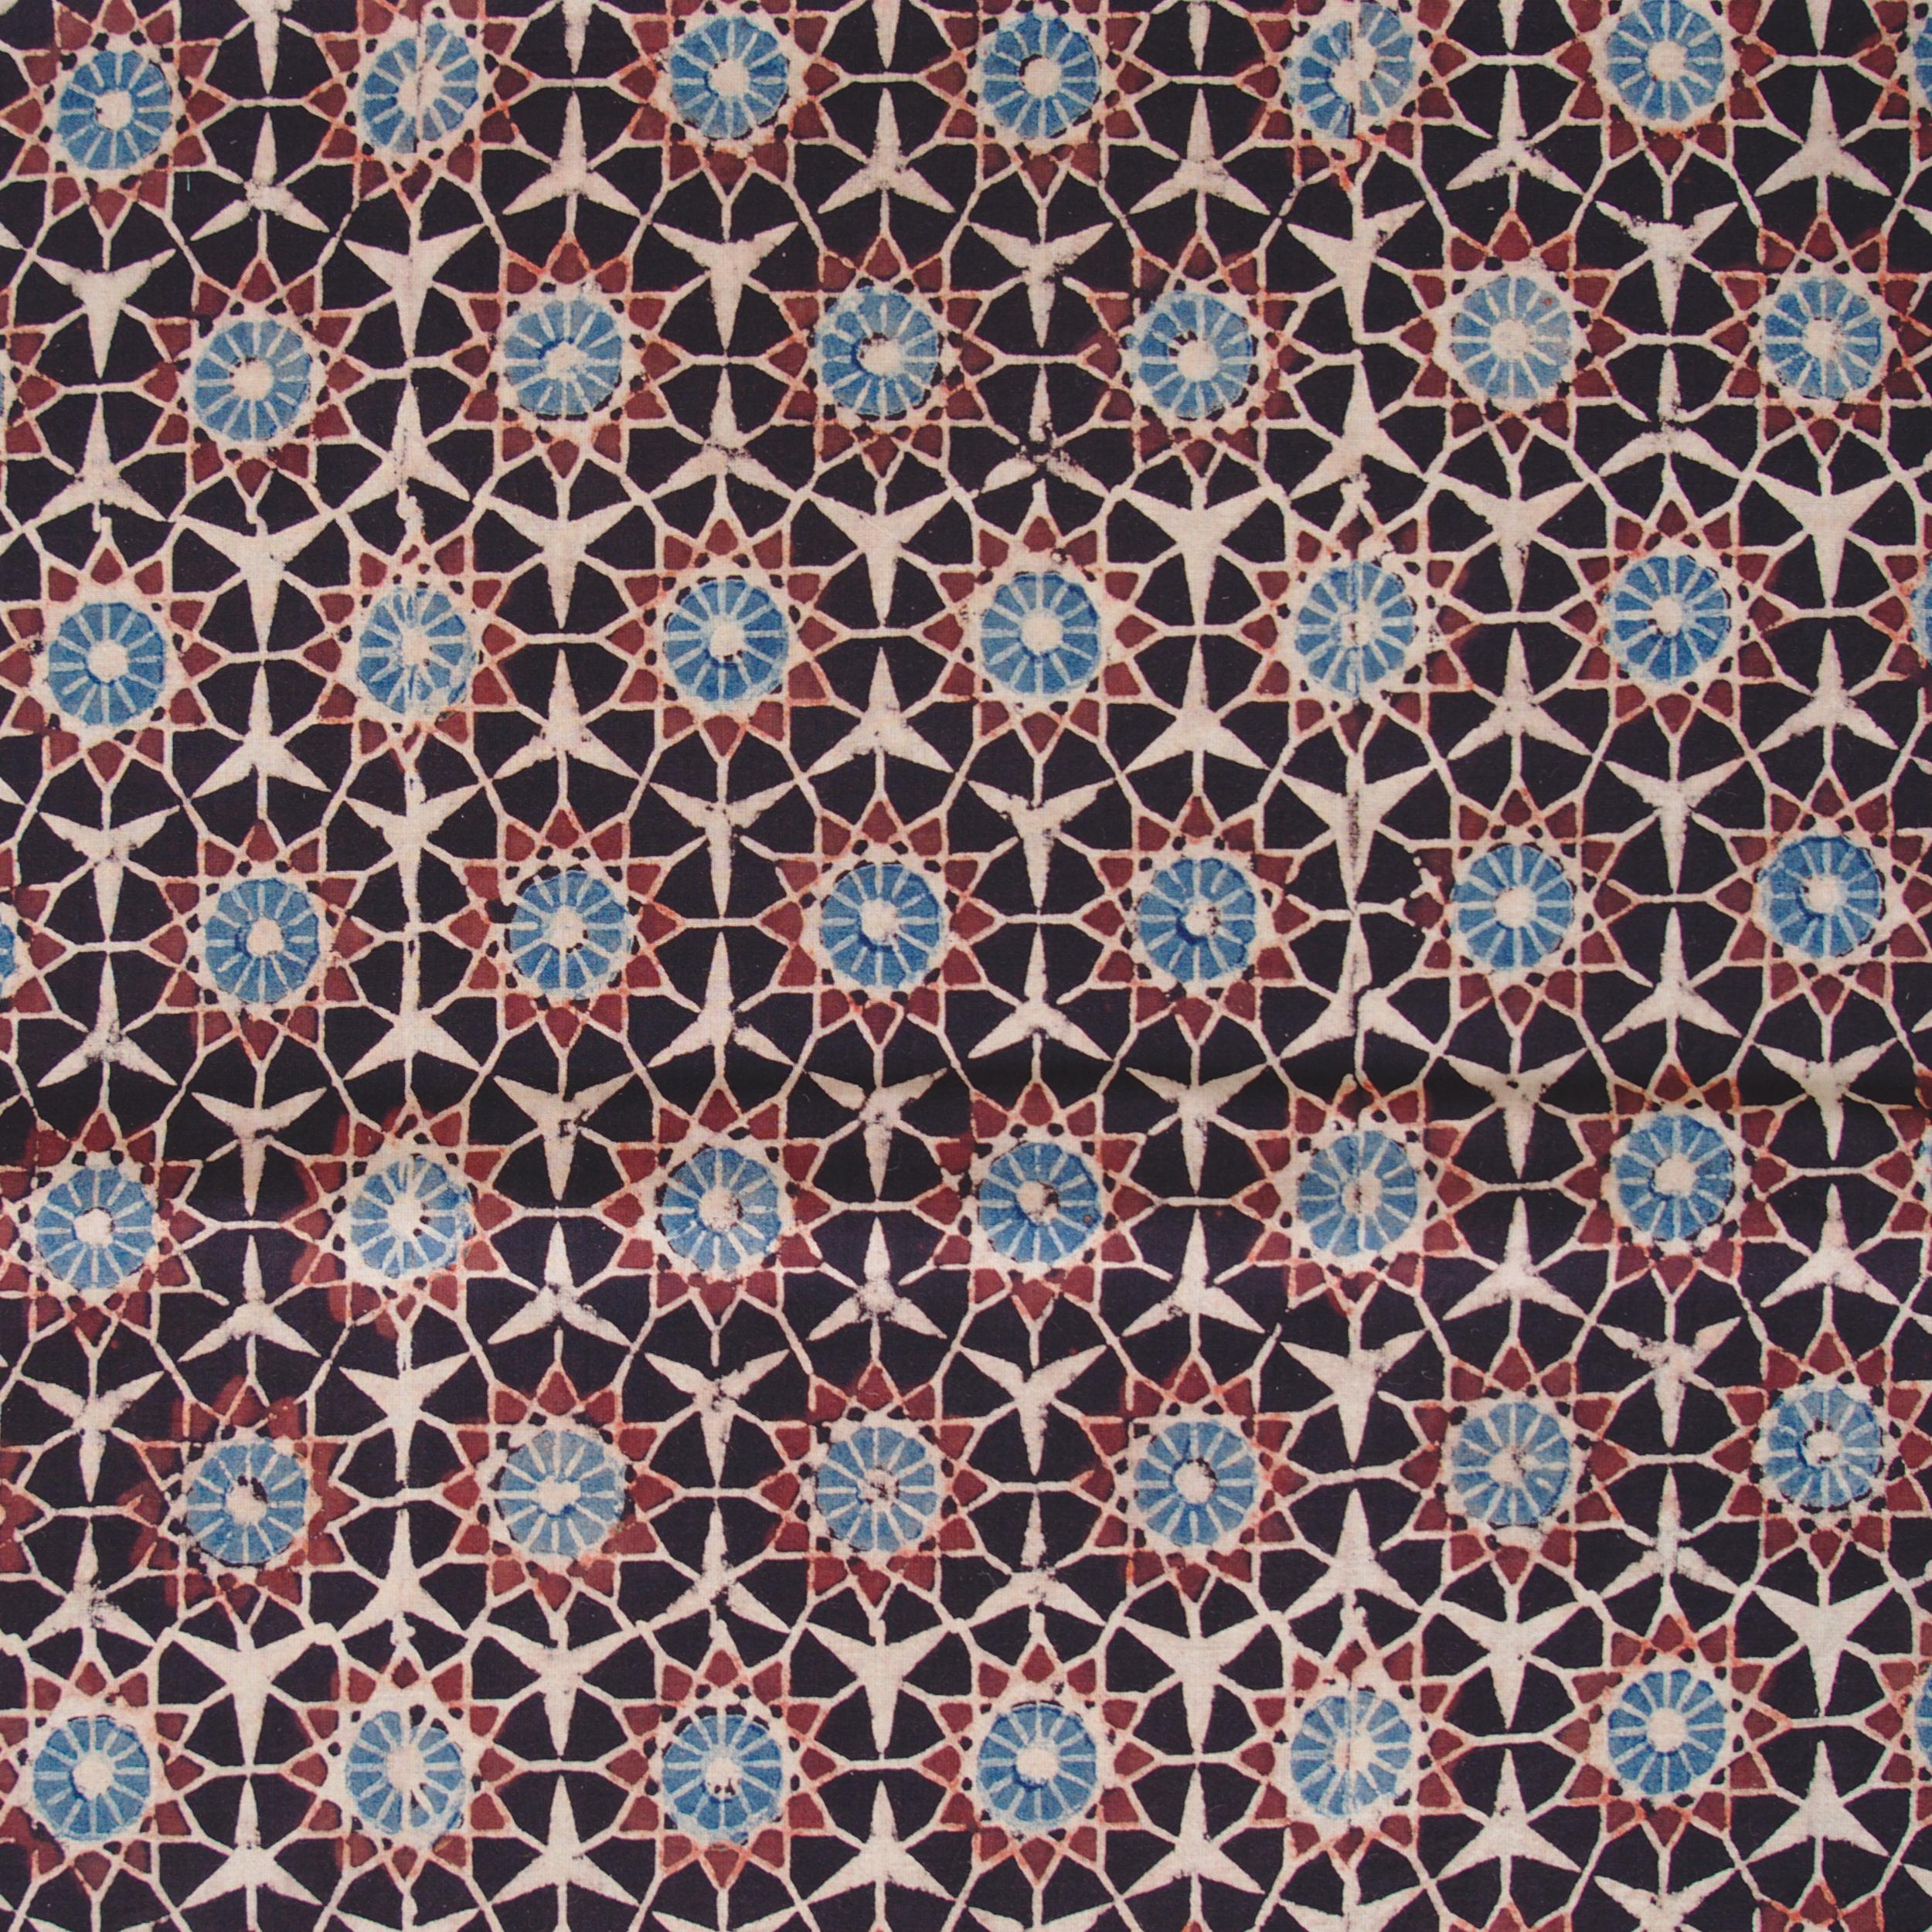 Block Printed Fabric, 100% Cotton, Ajrak Design: Black Base, Madder Root Red, Blue, Cream Burst. Close Up